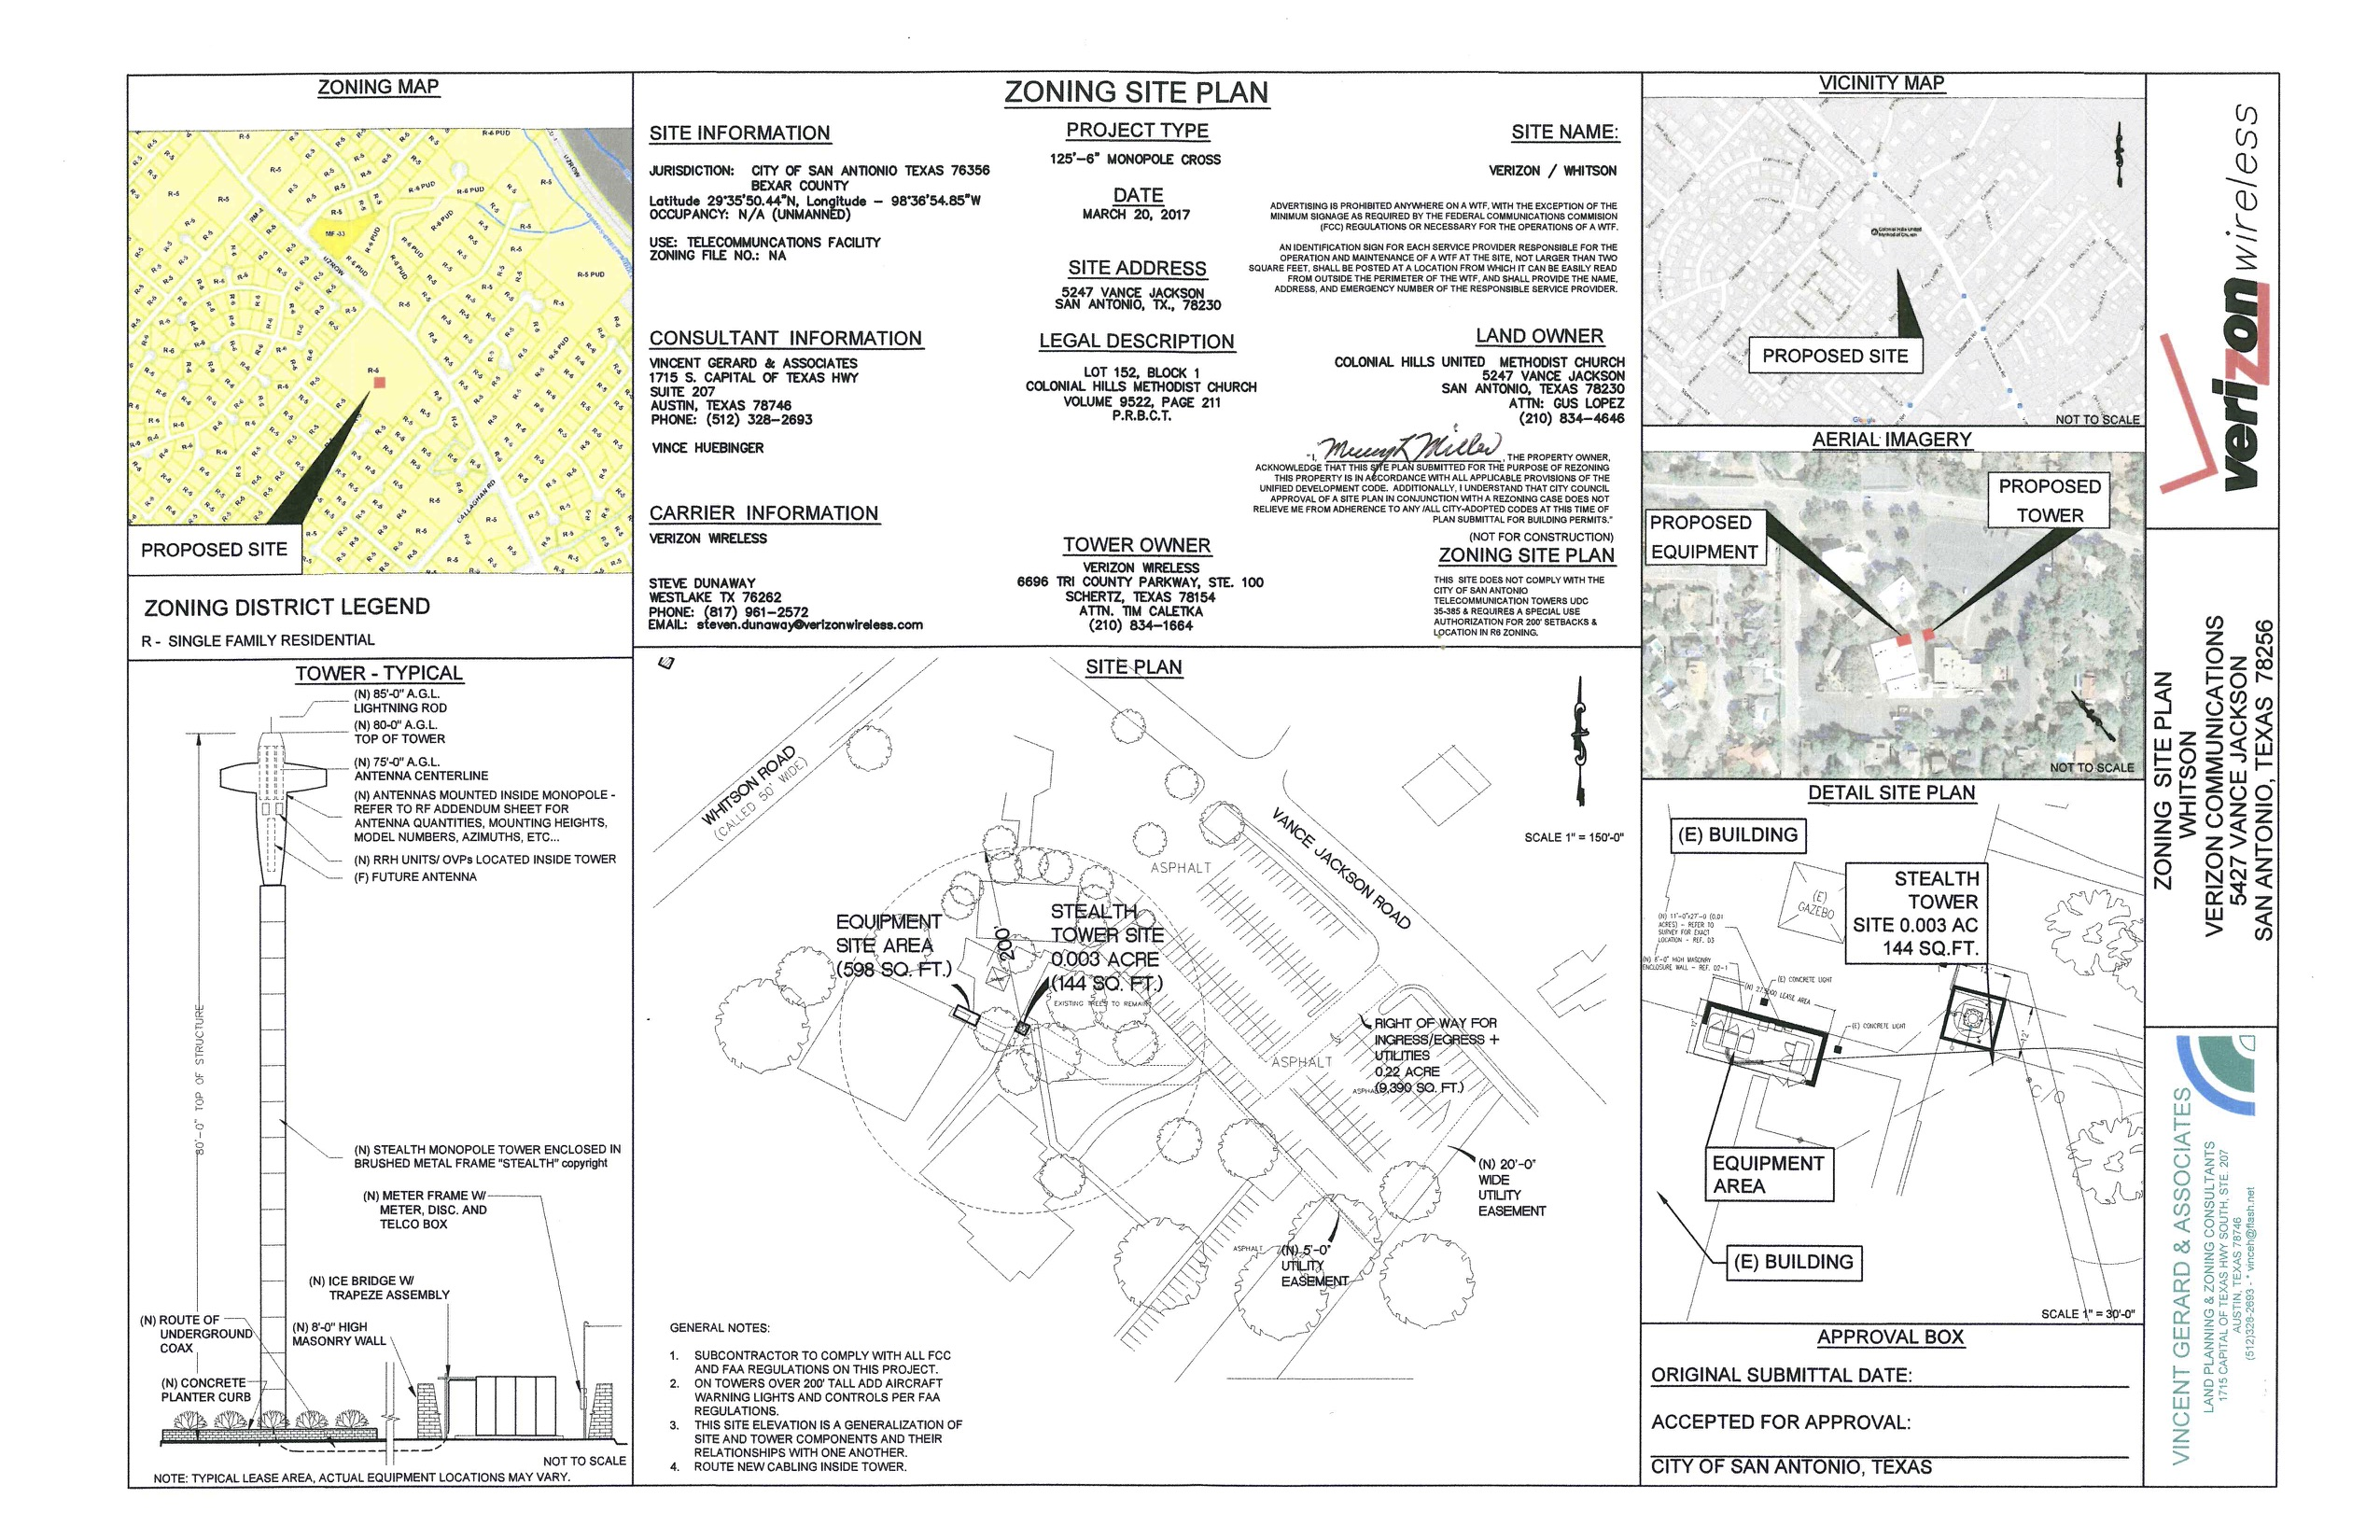 The site plan for Verizon's cell tower at Colonial Hills United Methodist Church includes the tower/cross design.